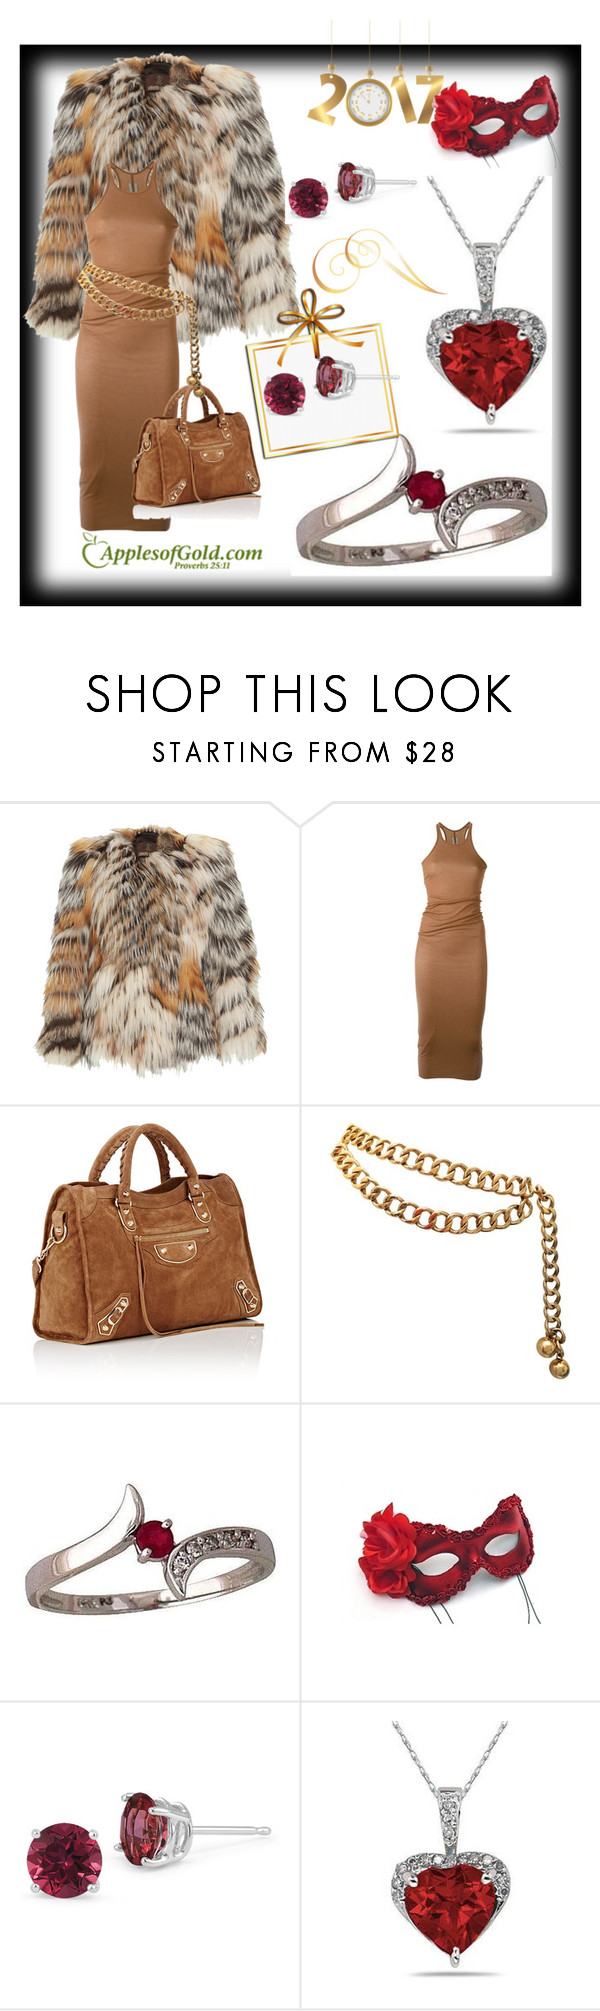 """""""Applesofgold.com/ruby and diamond"""" by alma-ja ❤ liked on Polyvore featuring Roberto Cavalli, Rick Owens, Chanel and Masquerade"""